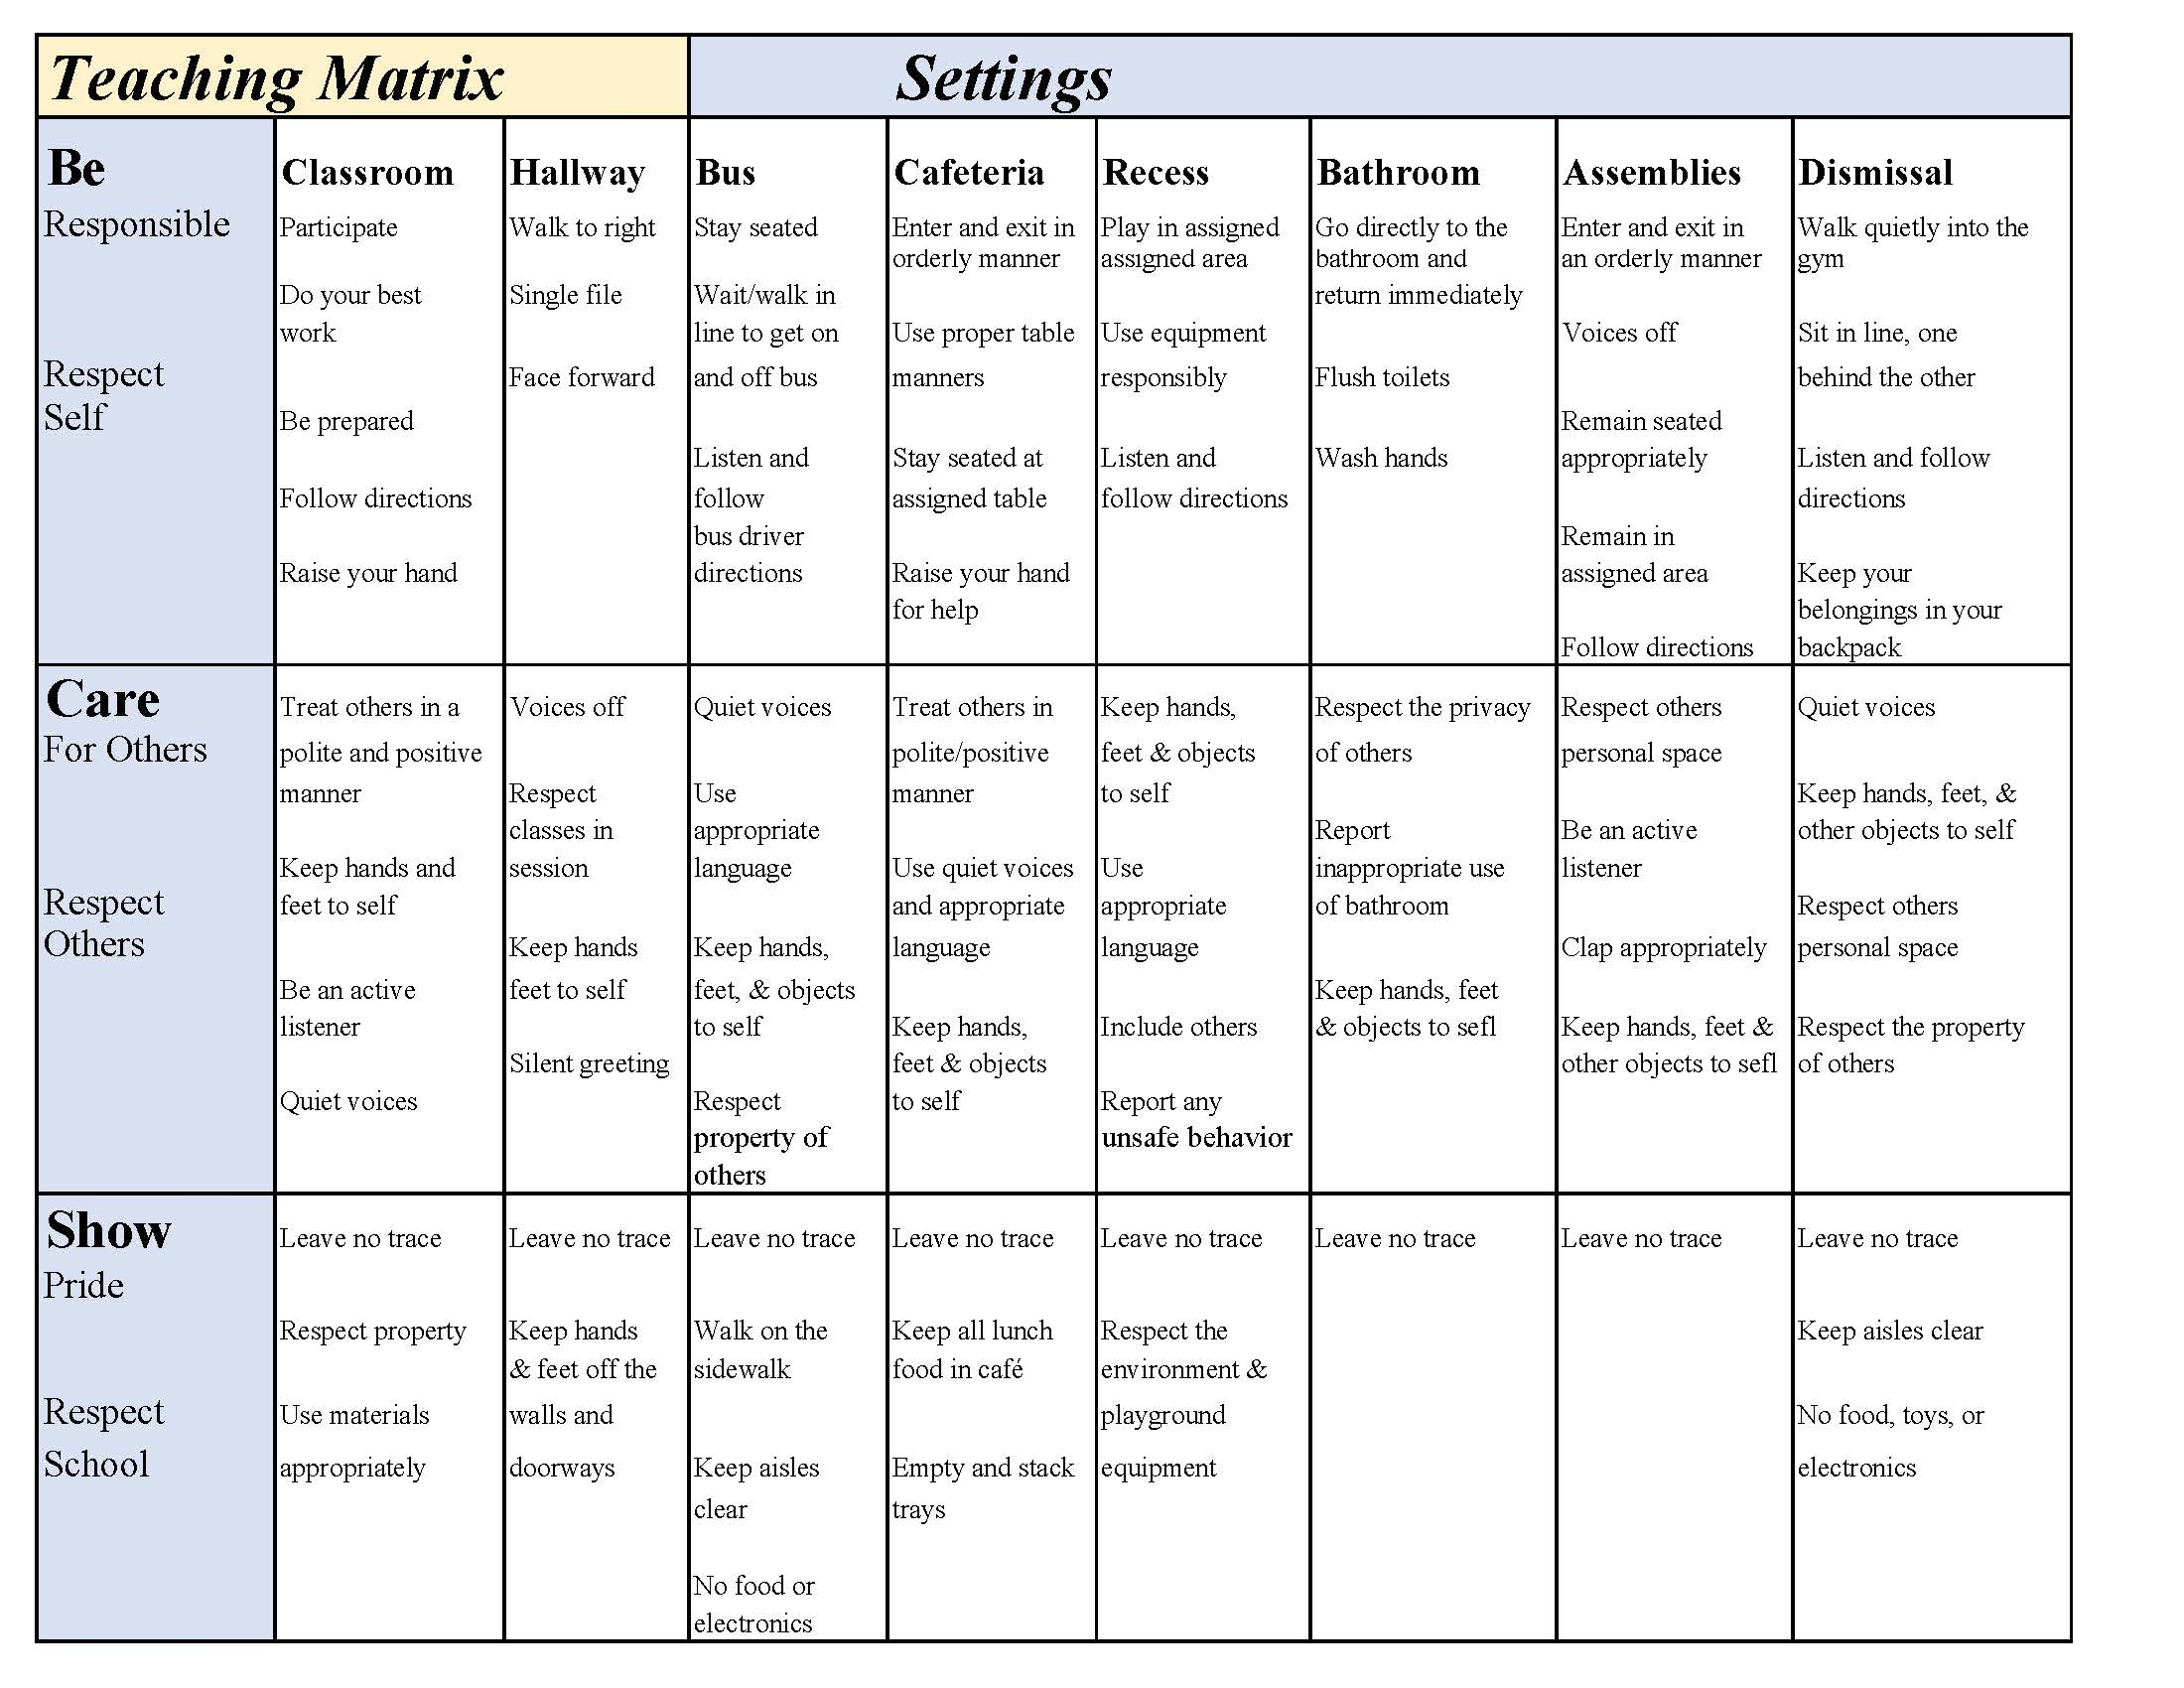 SRBI Behavior Matrix Image